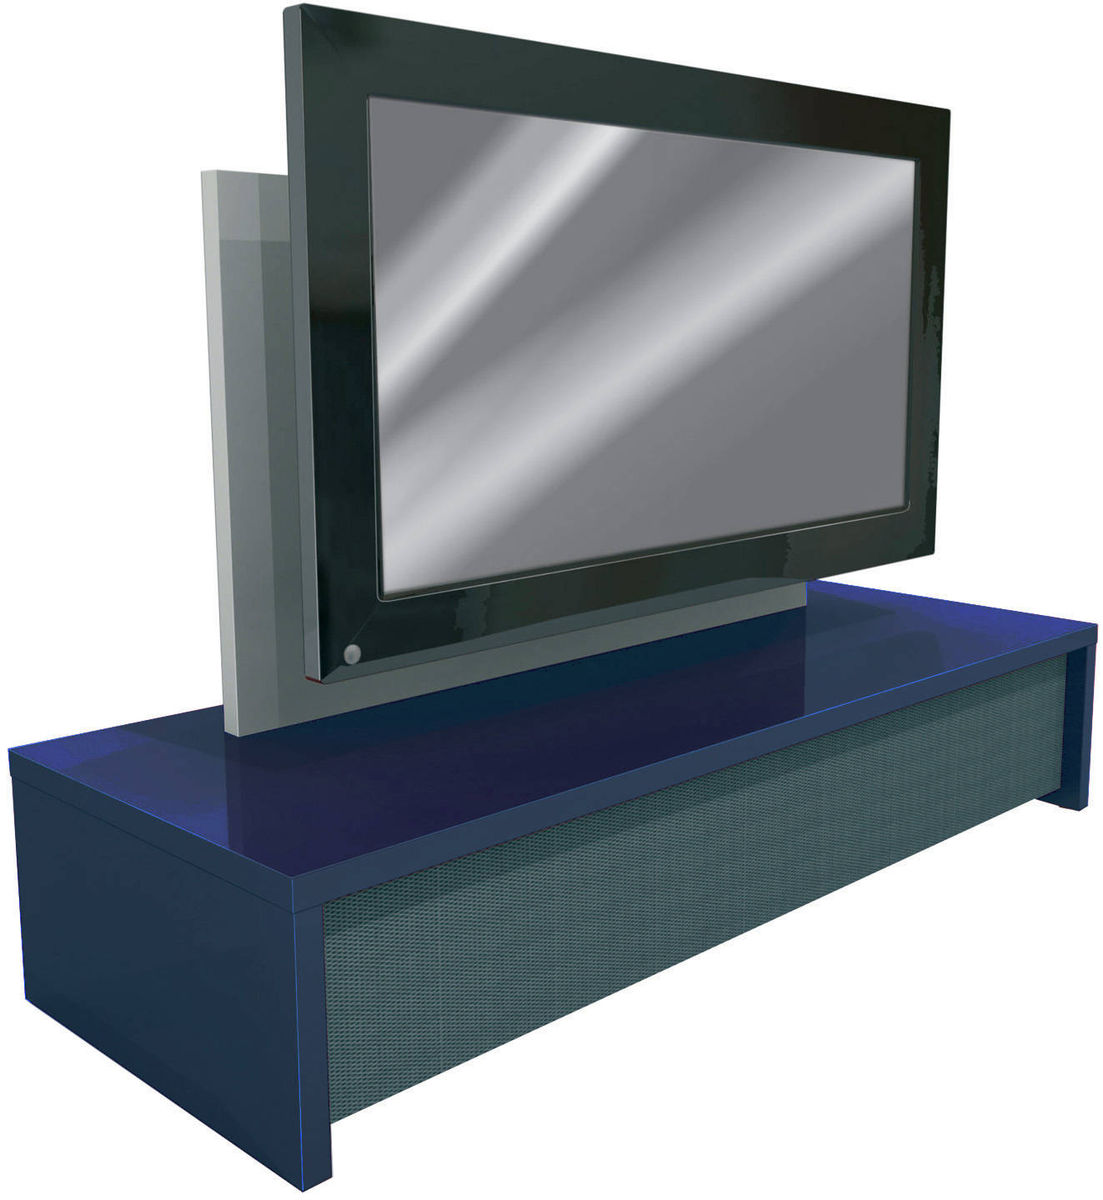 Table television ecran plat for Meuble tv plat